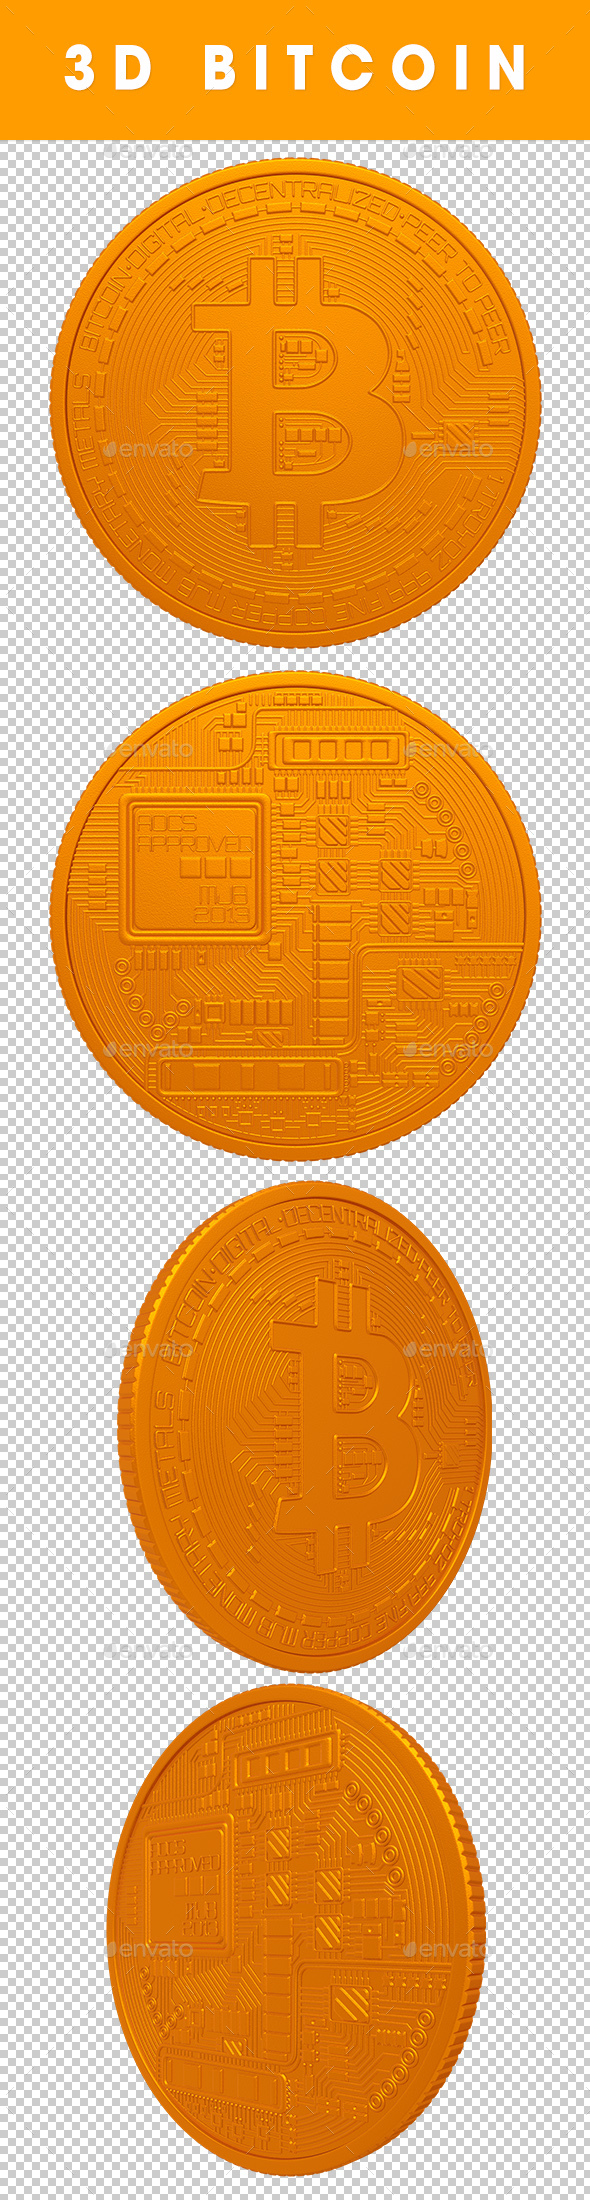 3D Bitcoin Renders - 3D Renders Graphics